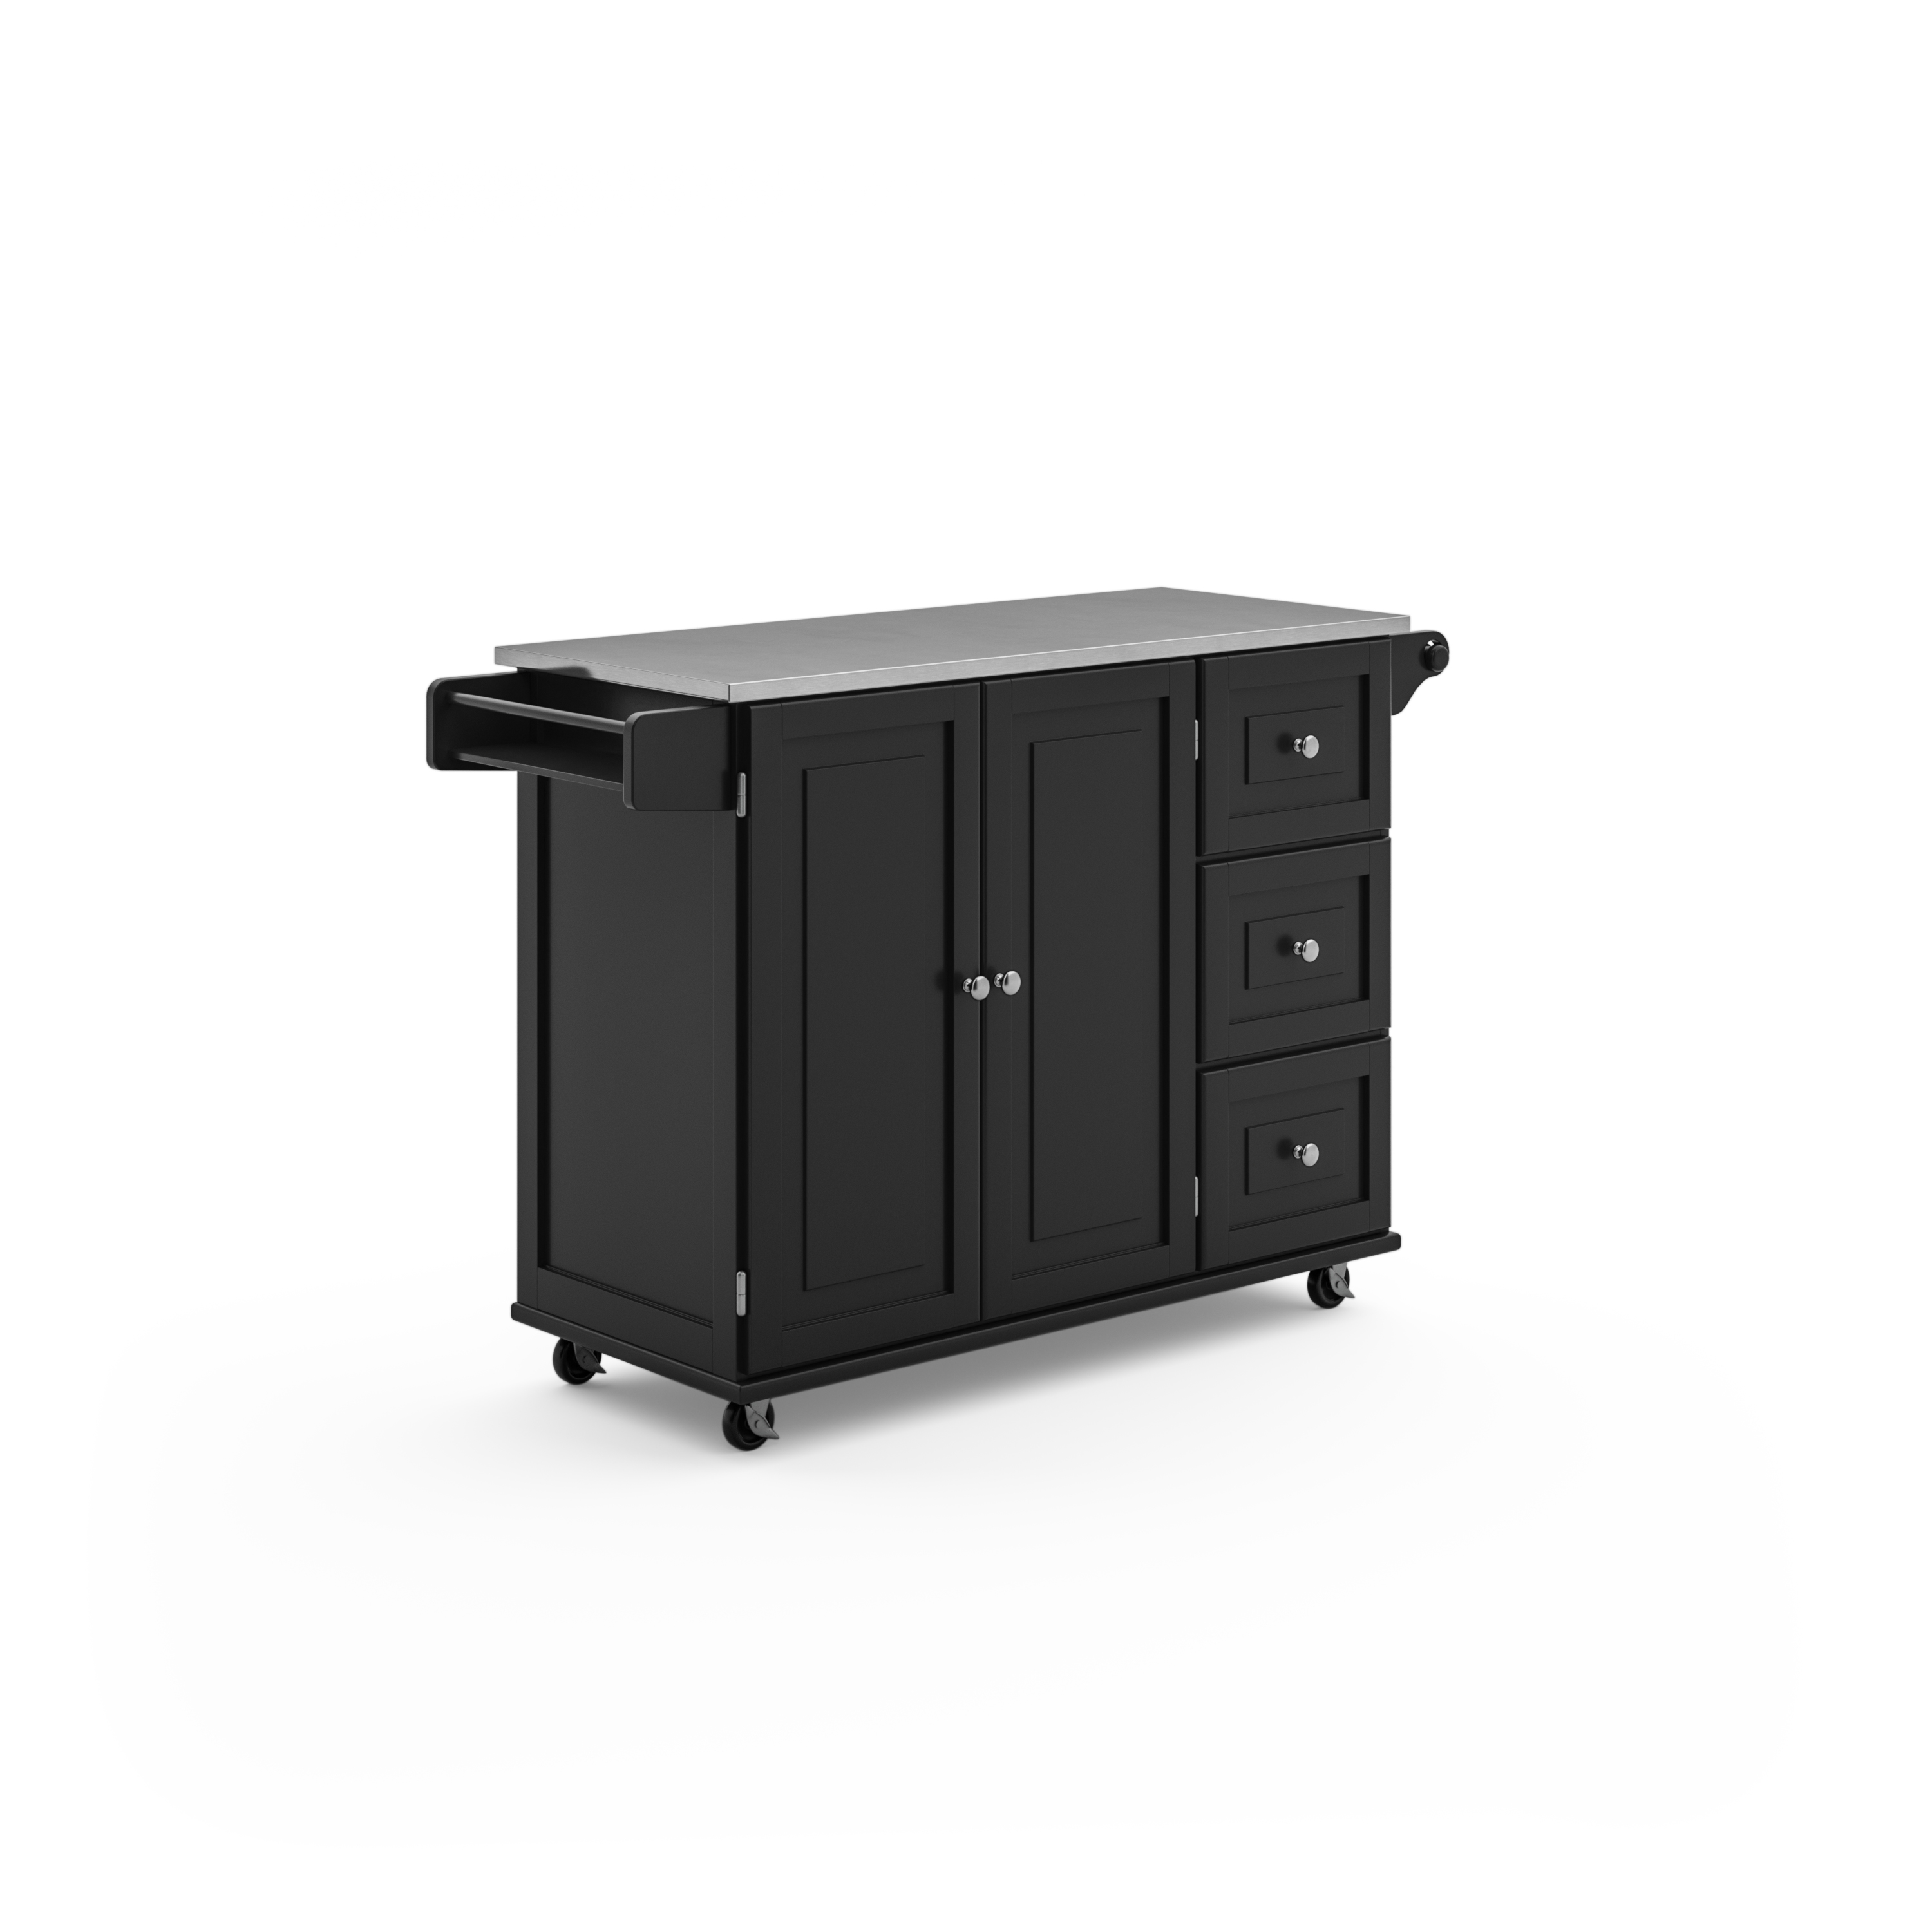 Blanche Kitchen Cart by homestyles at Sam Levitz Outlet